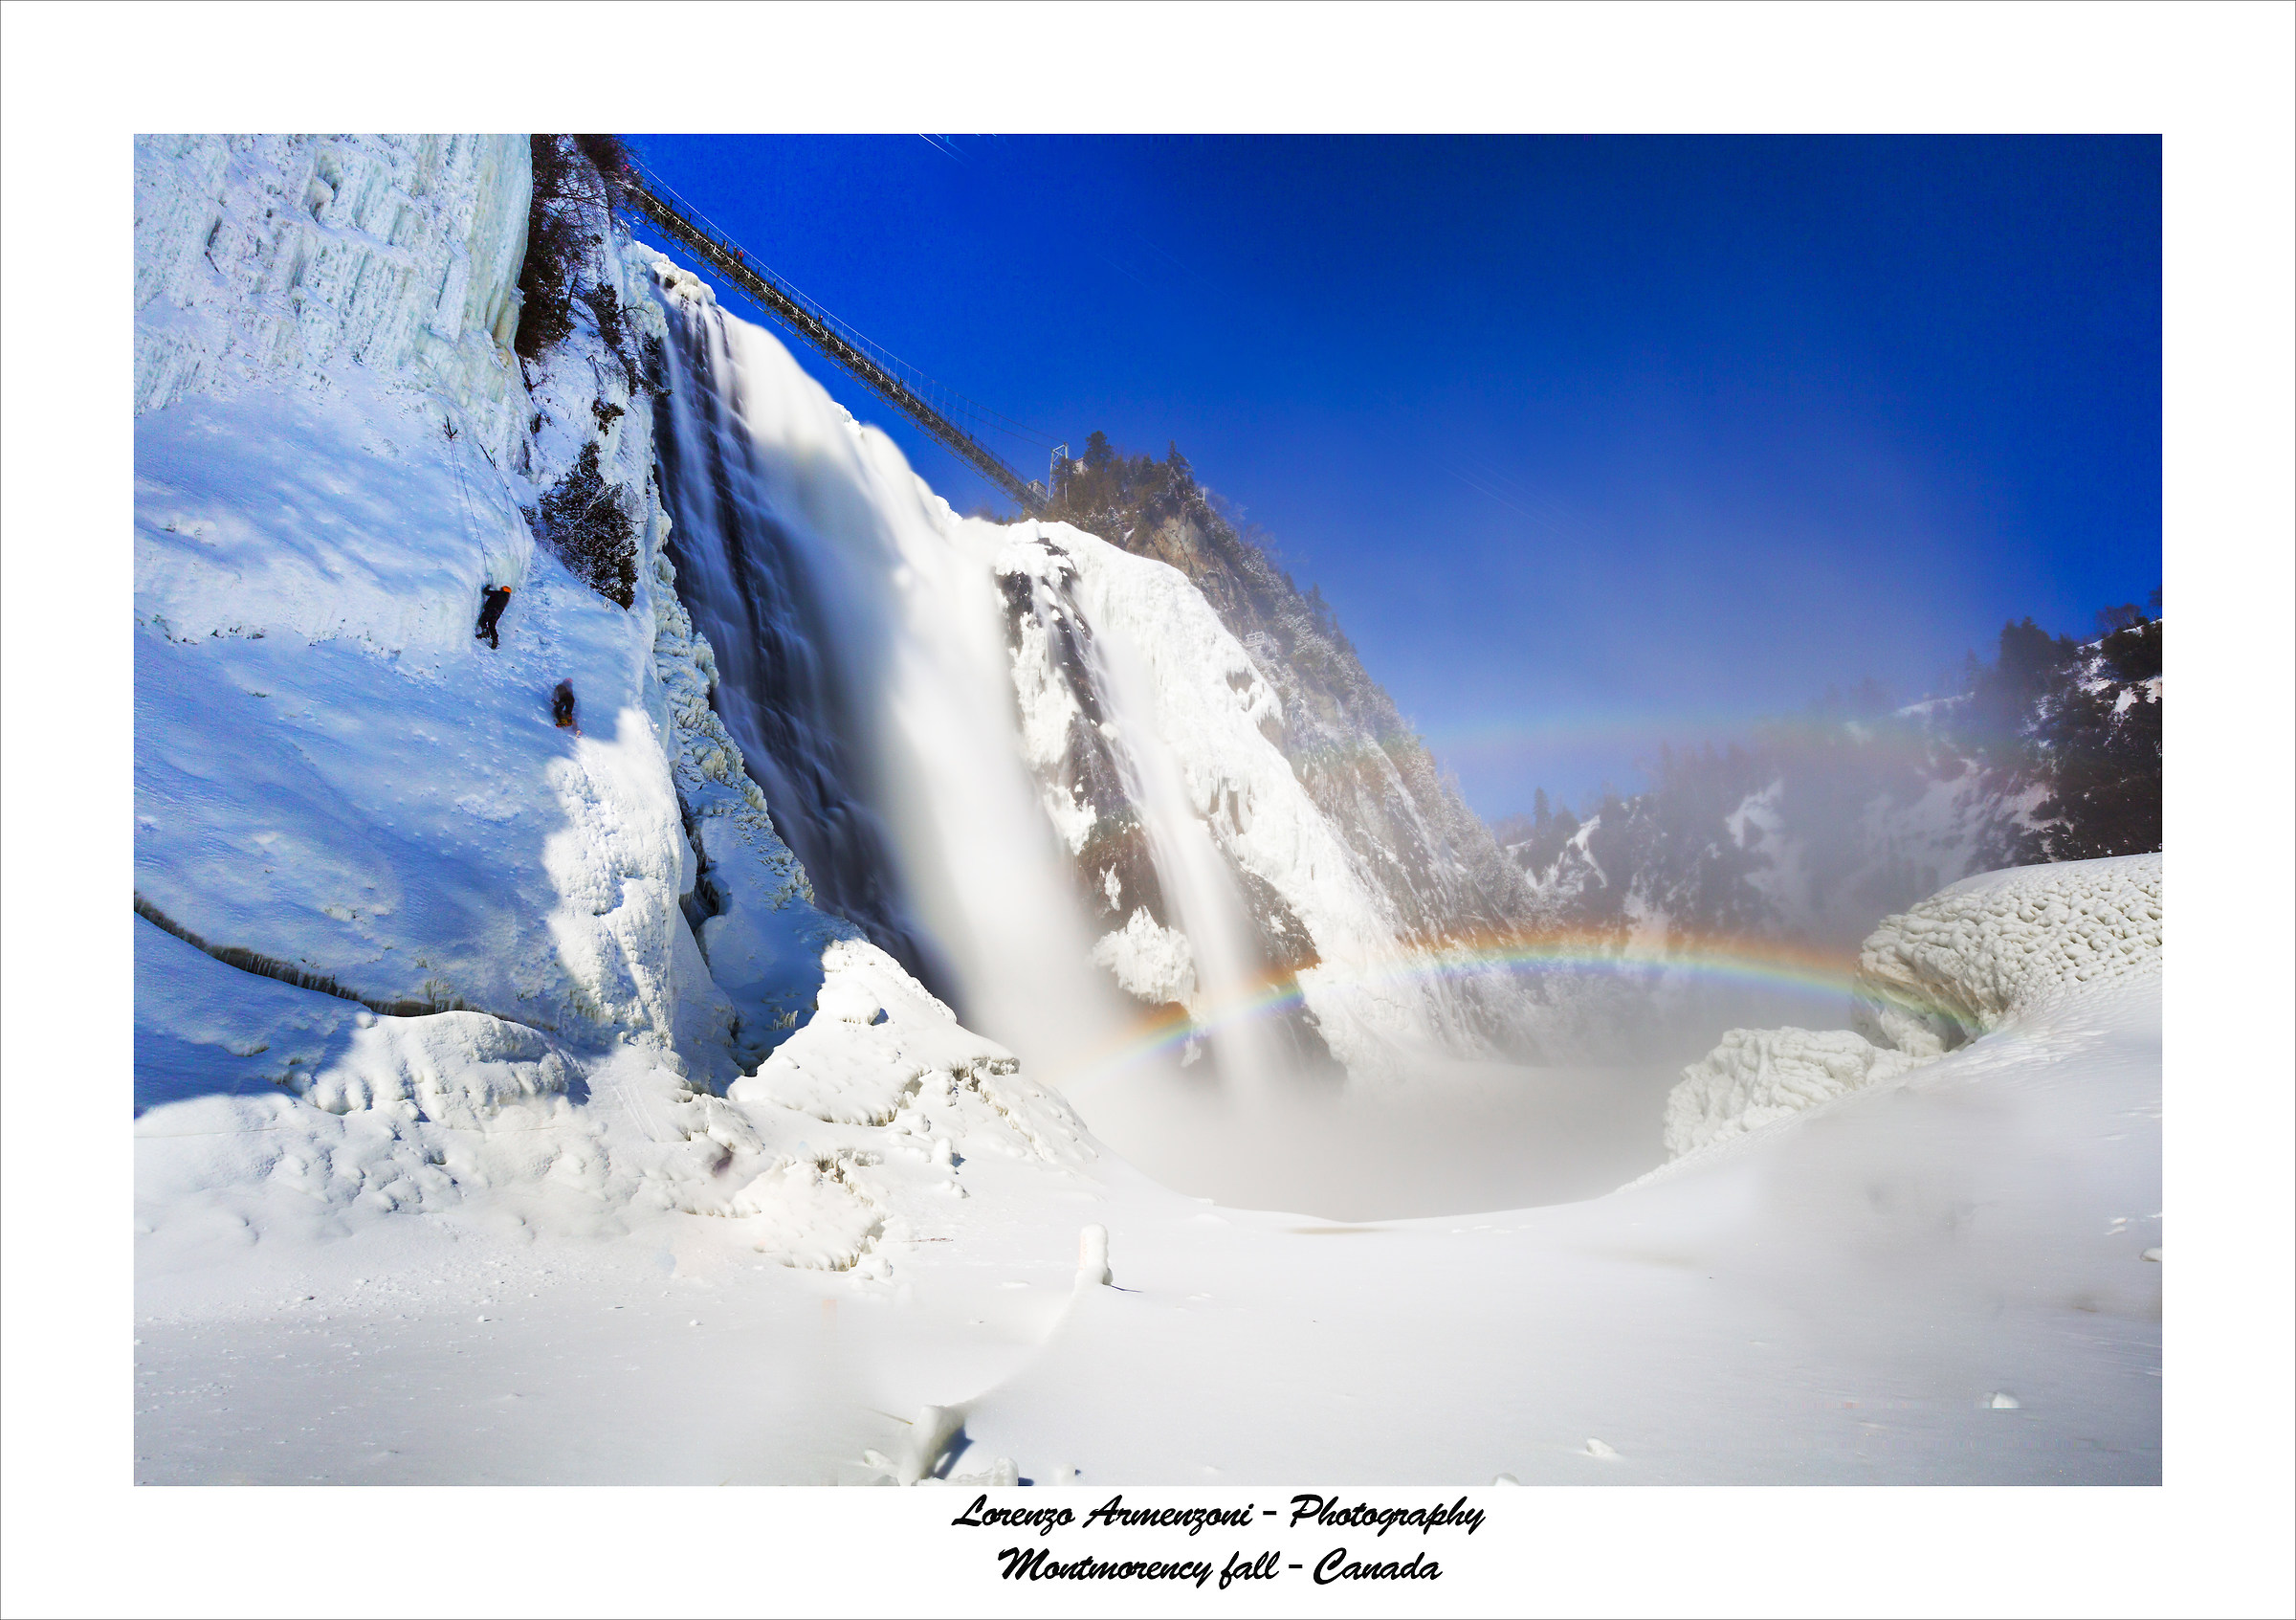 Montmorency fall Quebec...